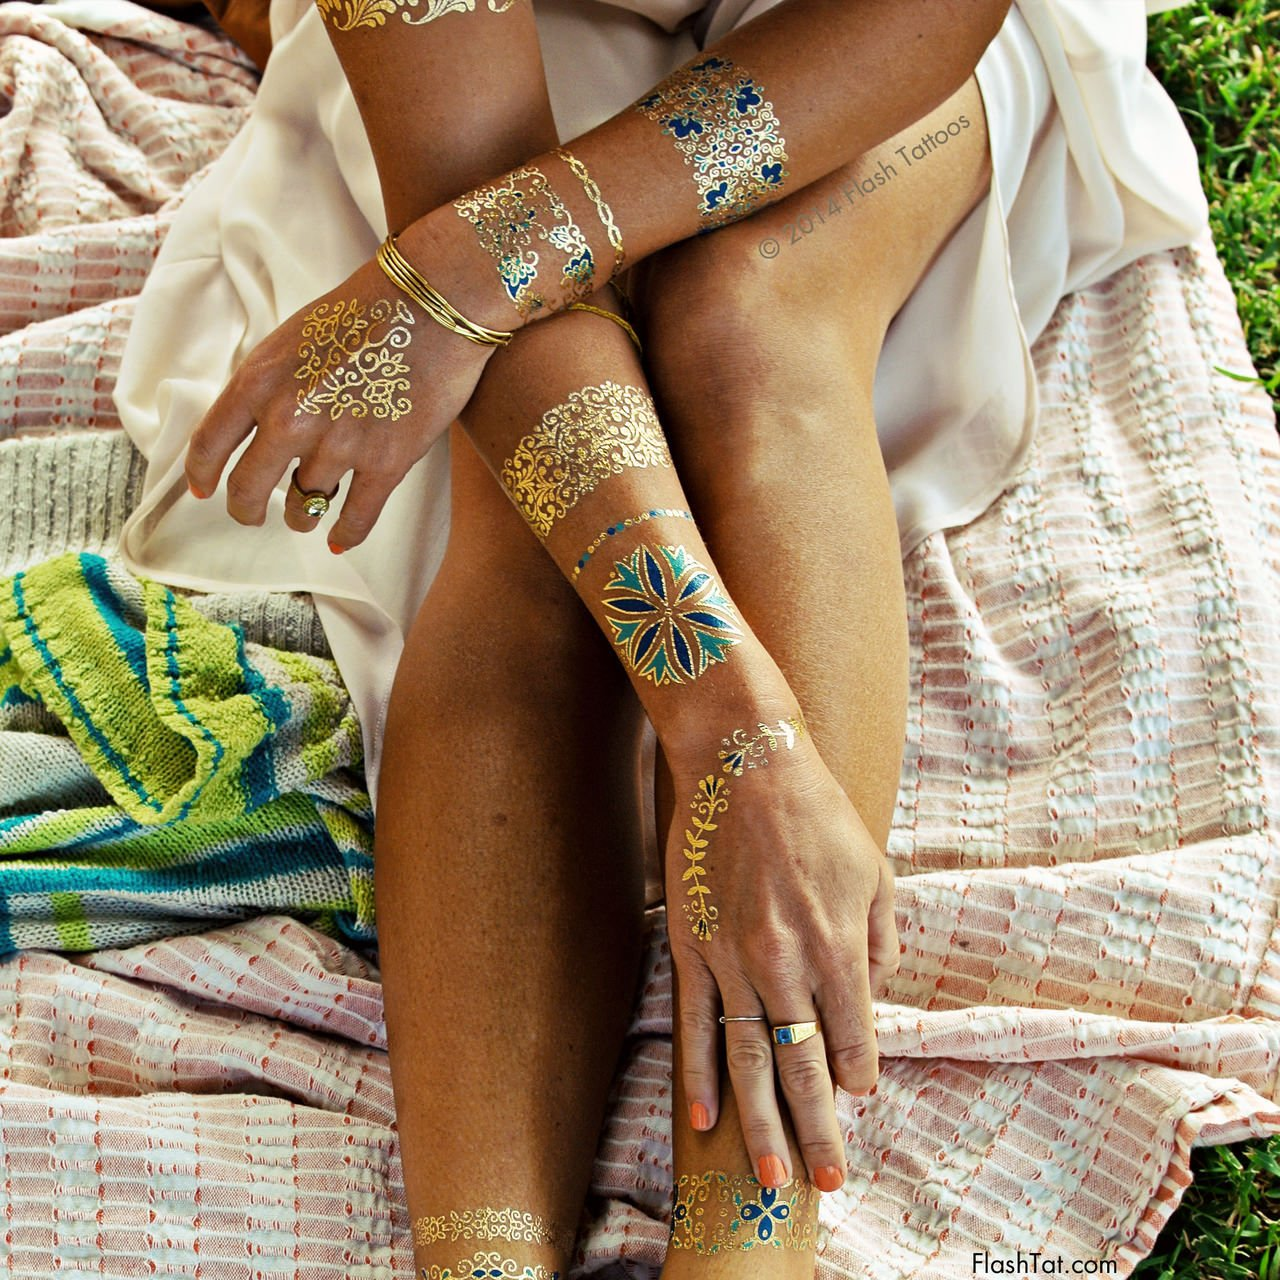 Flash Tattoos Isabella Authentic Metallic Temporary Jewelry Tattoos 4 Sheet Pack (Metallic Gold/blue/green) Includes over 33 premium waterproof floral inspired tattoos